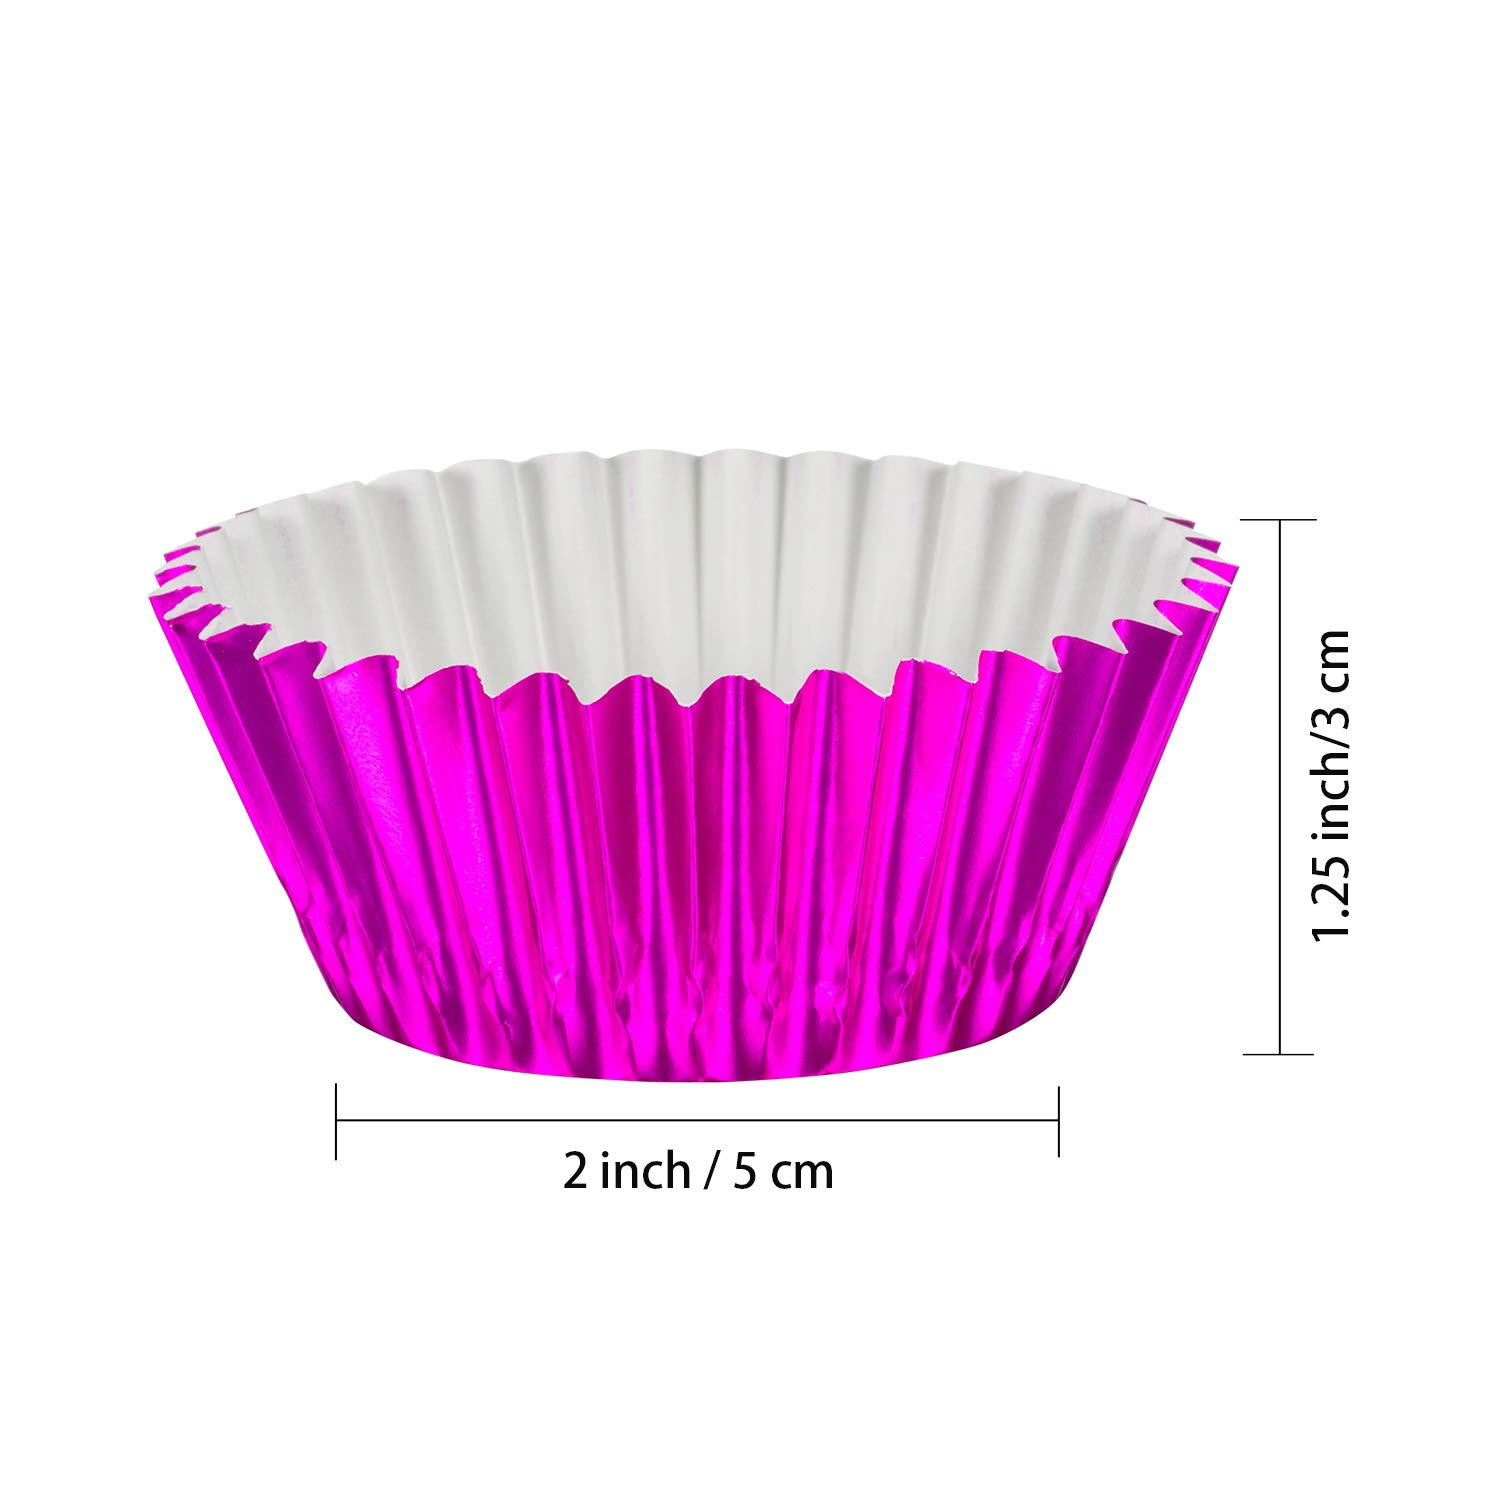 Sumind 10 Colors Paper Baking Cups Foil Cupcake Liners Muffin Case Decoration Cups (400 Pieces) by Sumind (Image #2)